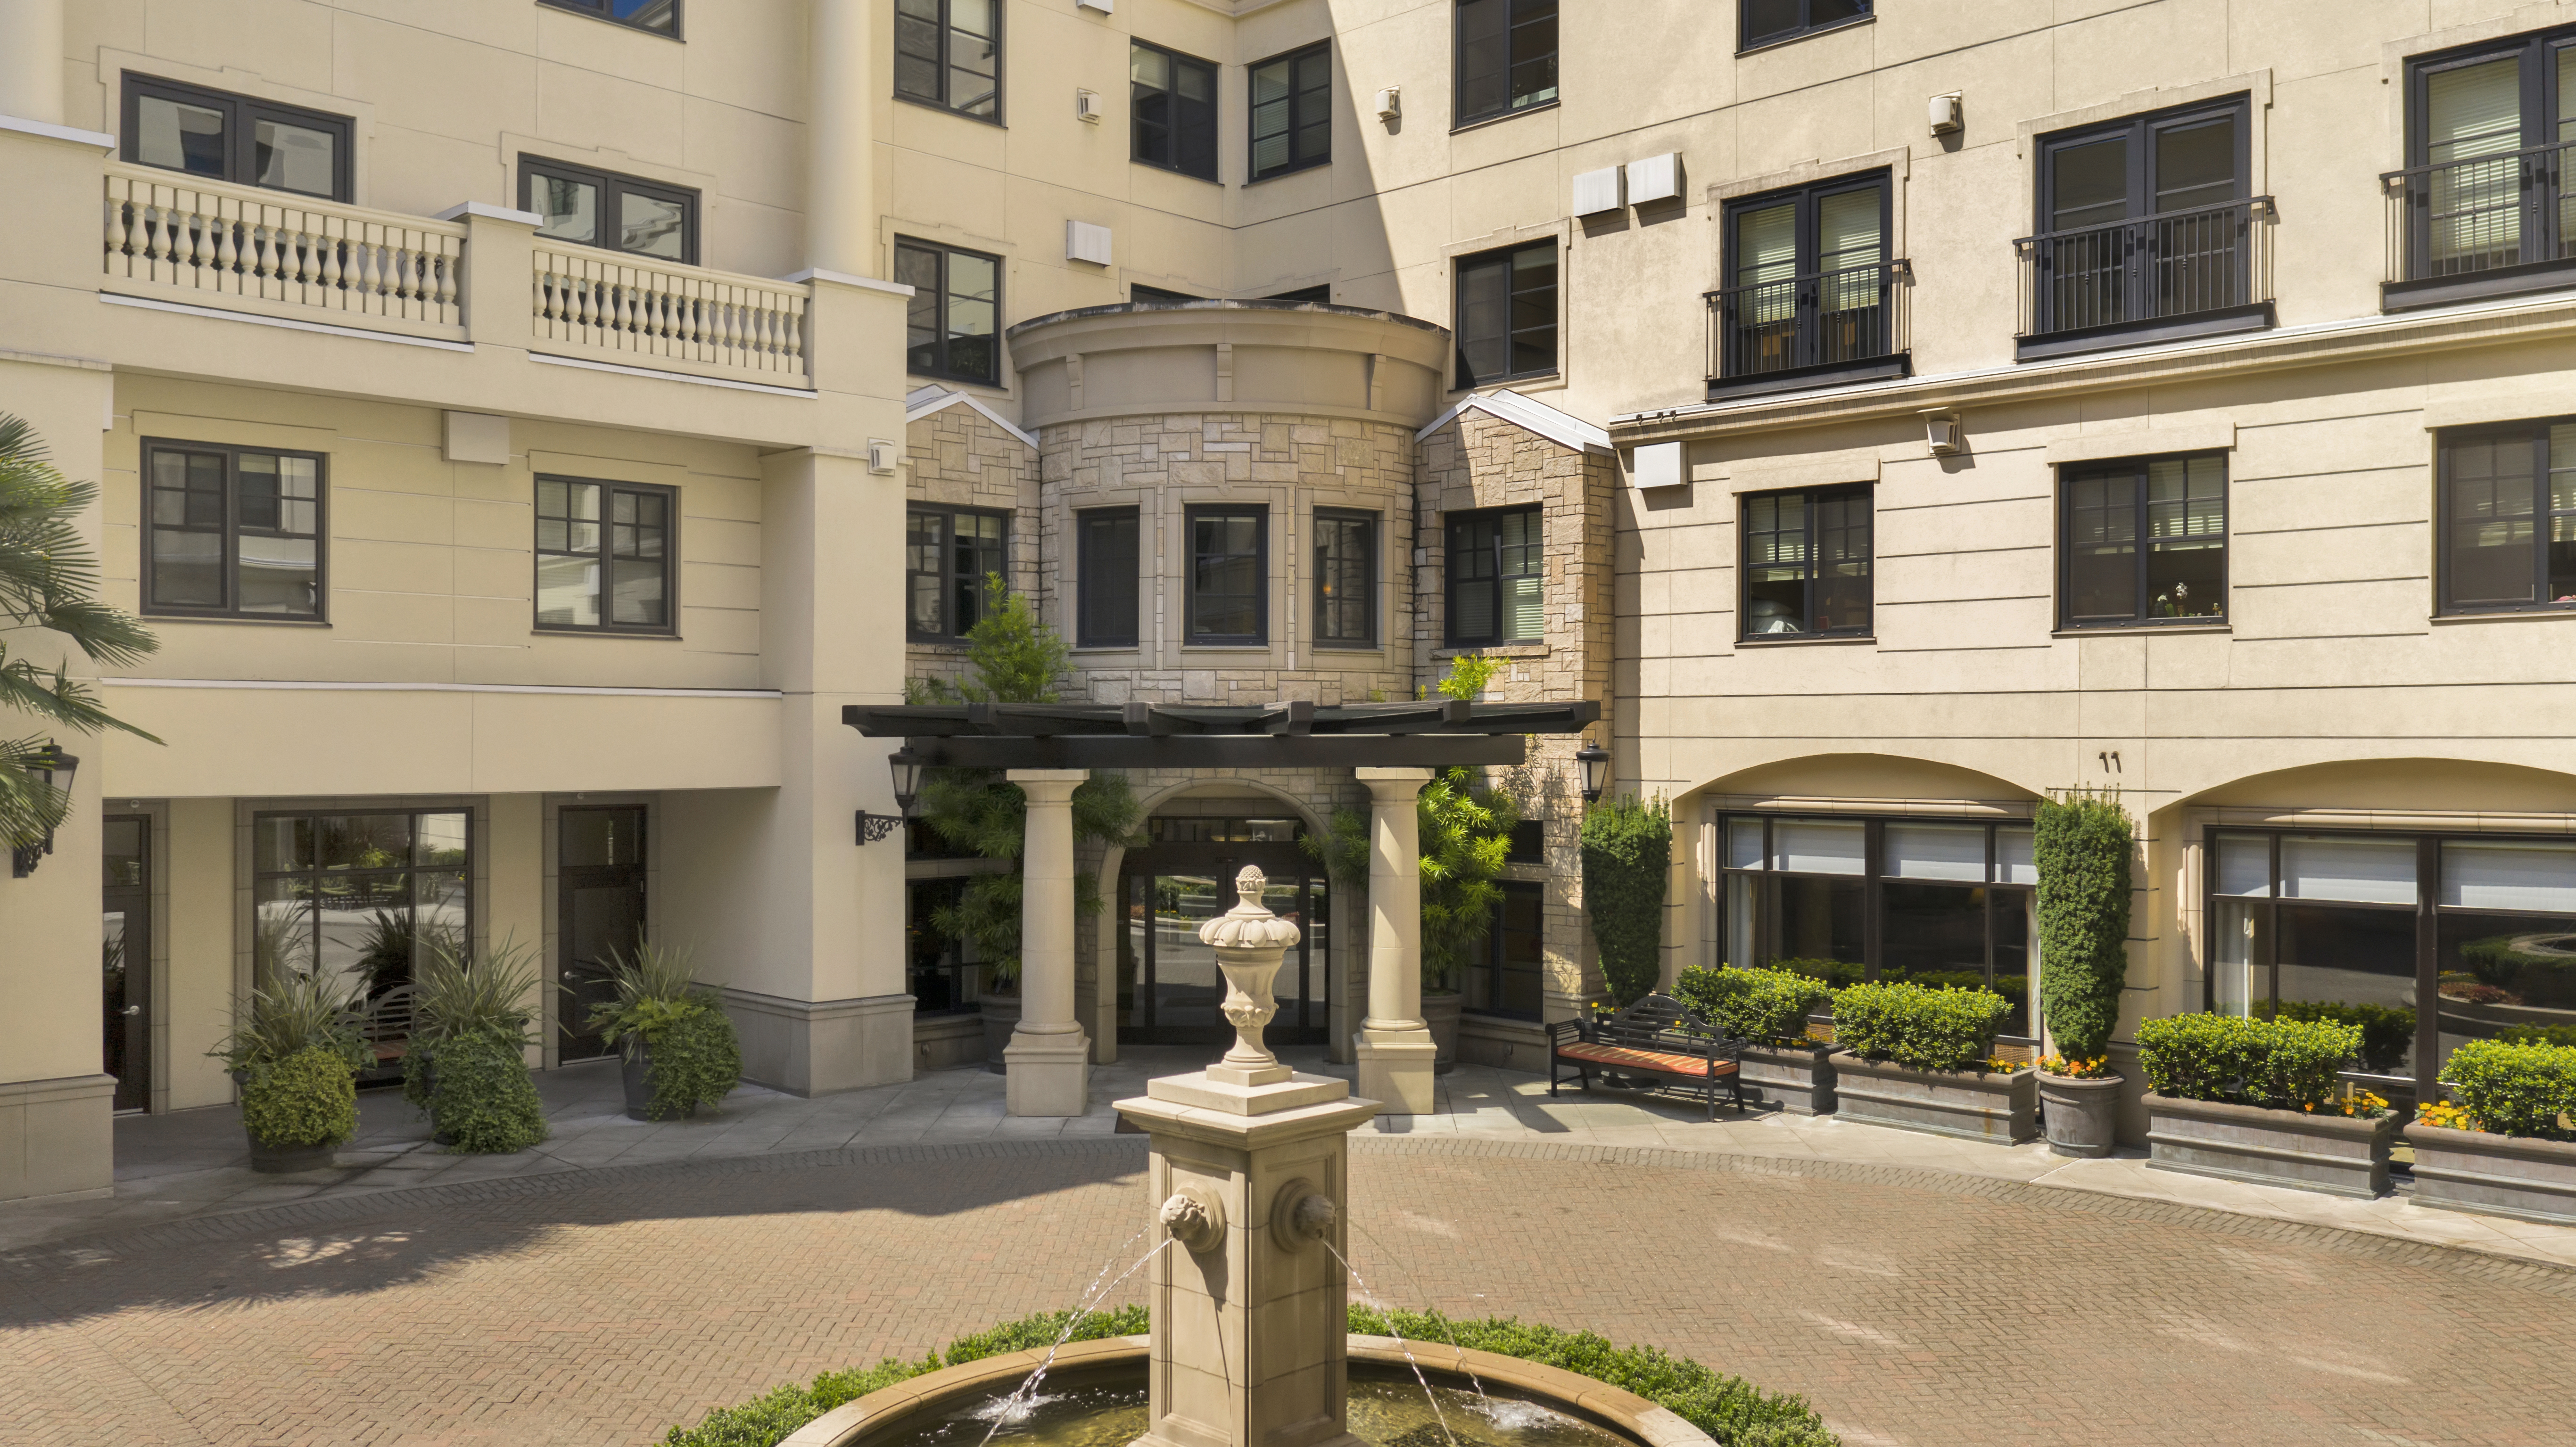 The Bellettini Pricing Photos And Floor Plans In Bellevue Wa Seniorly